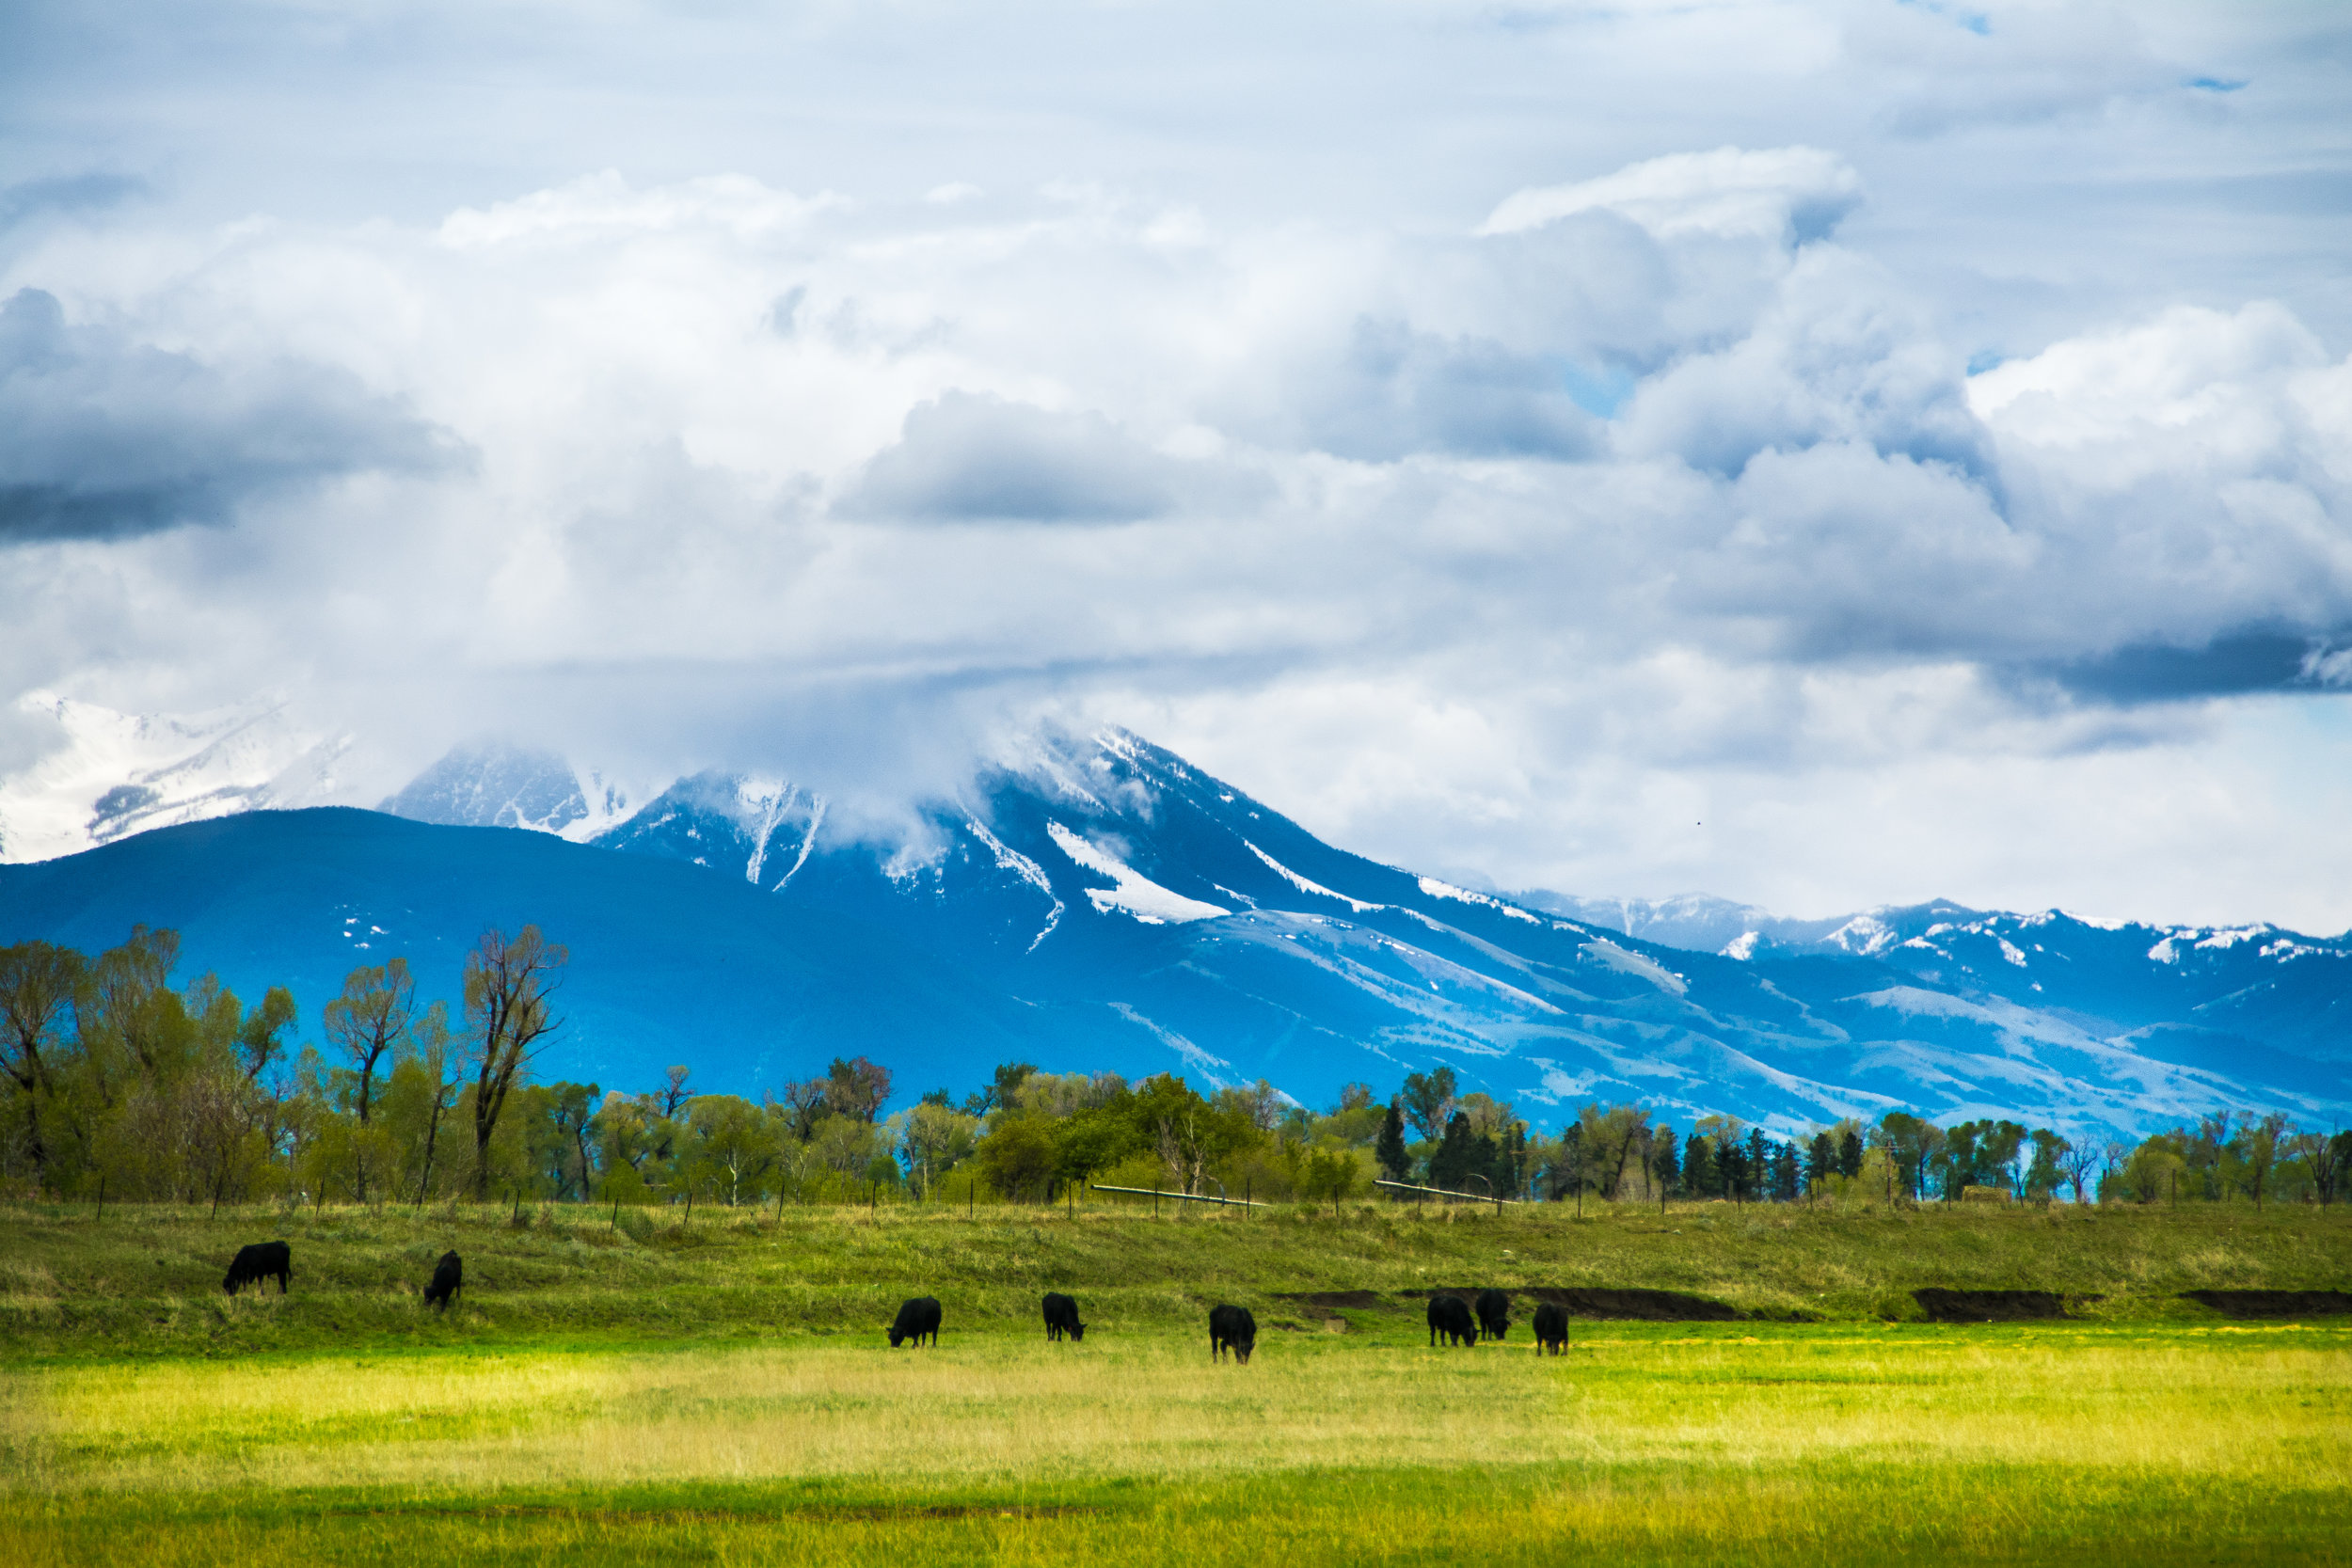 cattle grazing in montana. photo: Hannah Lorsch/shutterstock